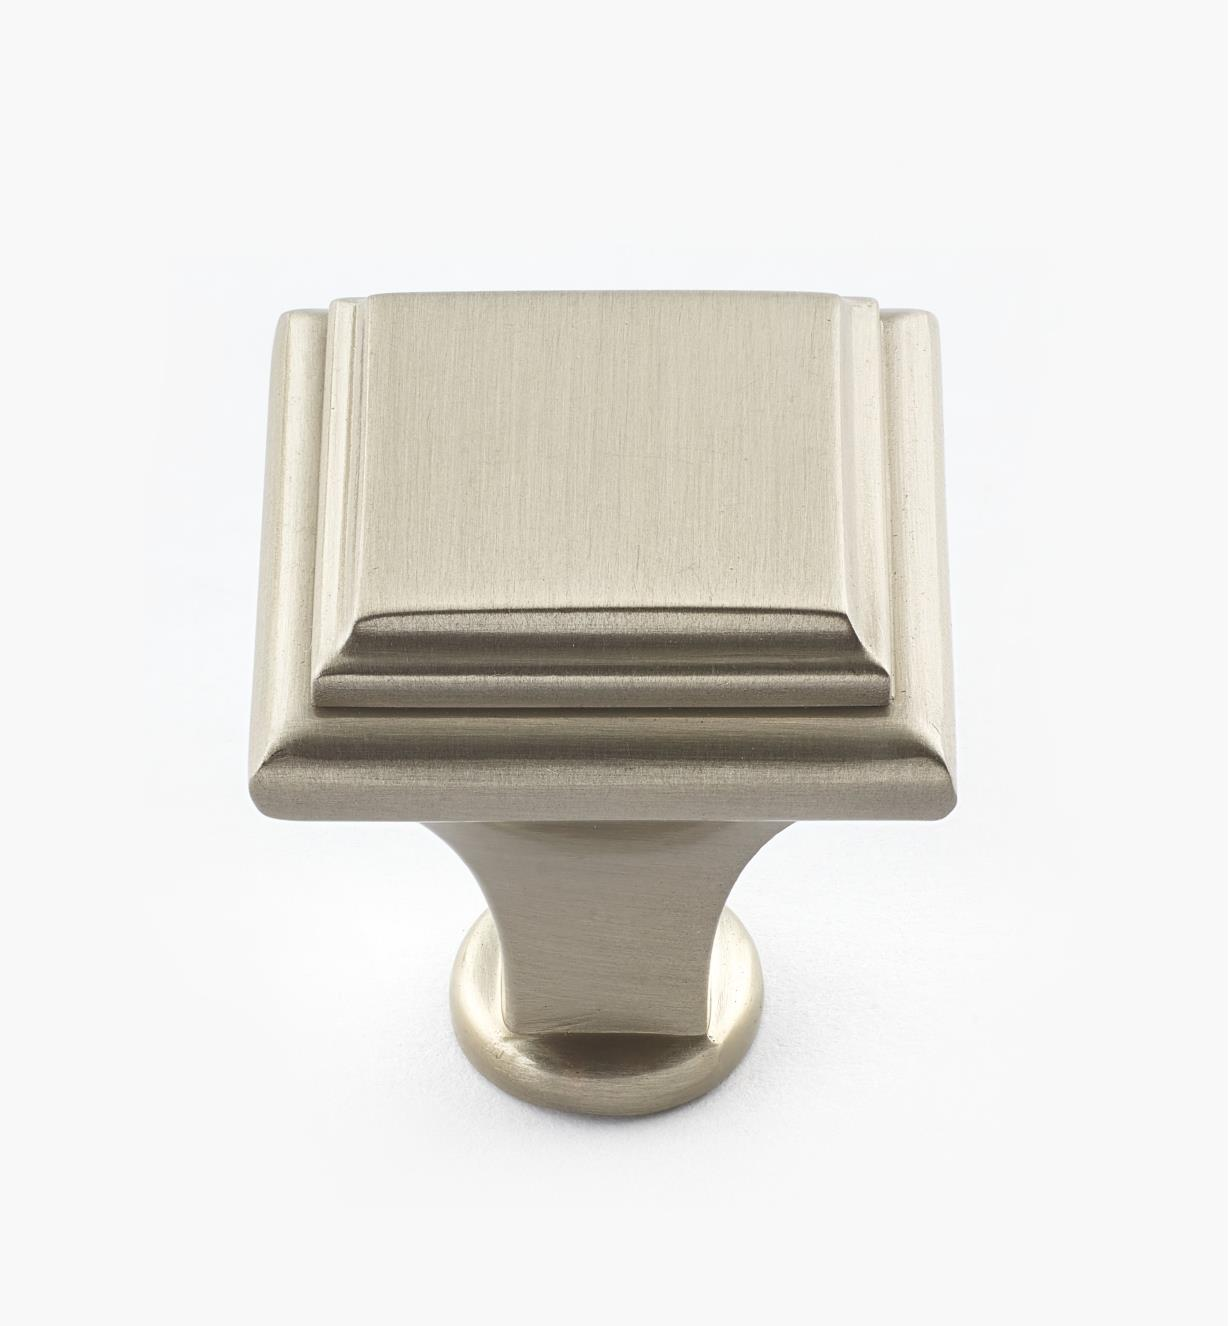 02A3951 - Manor Satin Chrome Knob